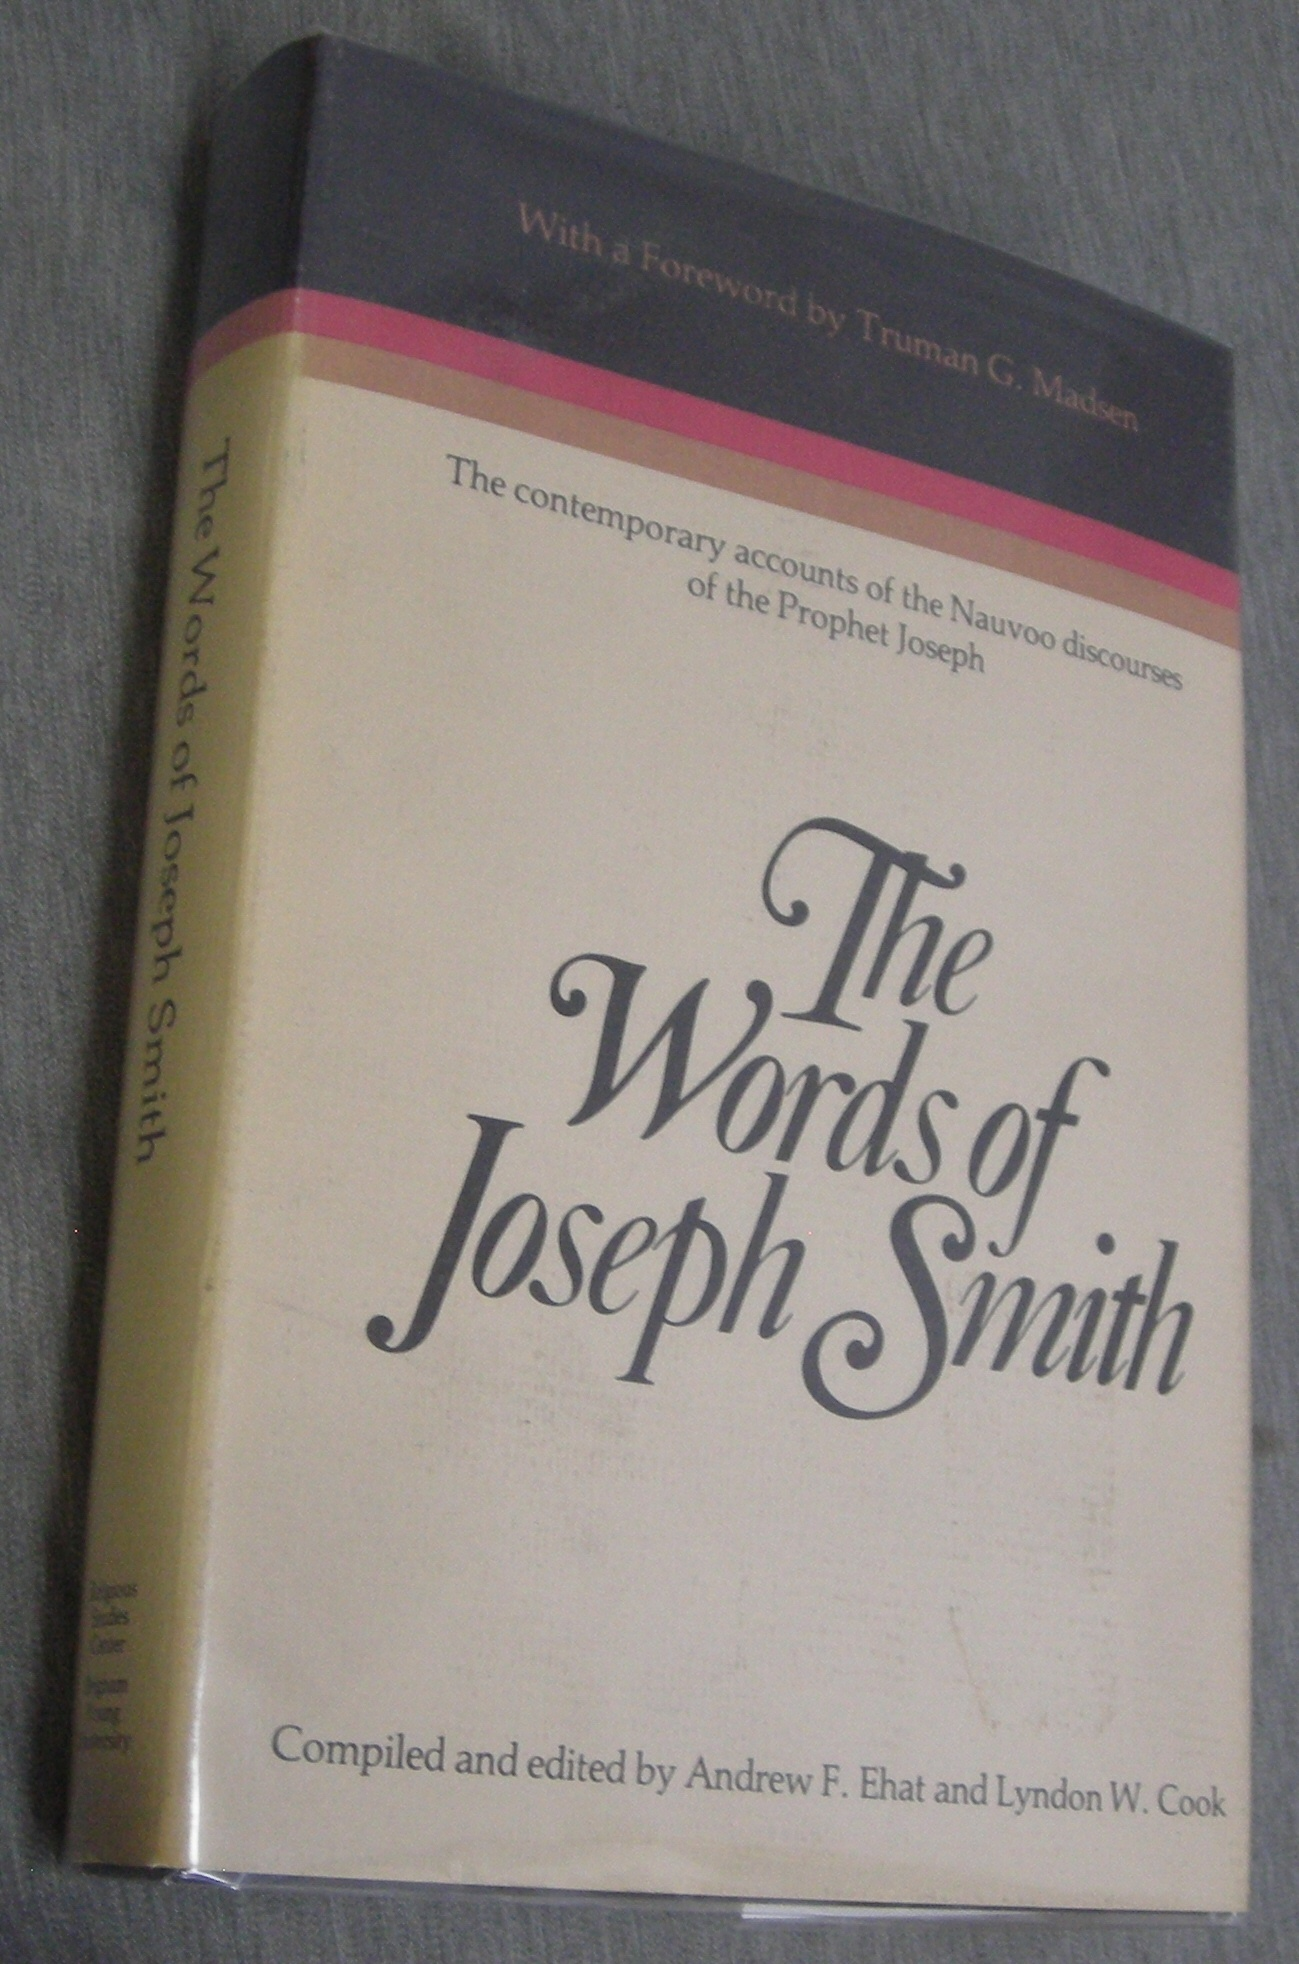 The Words of Joseph Smith - the Contemporary Accounts of the Nauvoo Discourses of the Prophet Joseph, Ehat, Andrew F. & Cook, Lyndon W. (Editors)